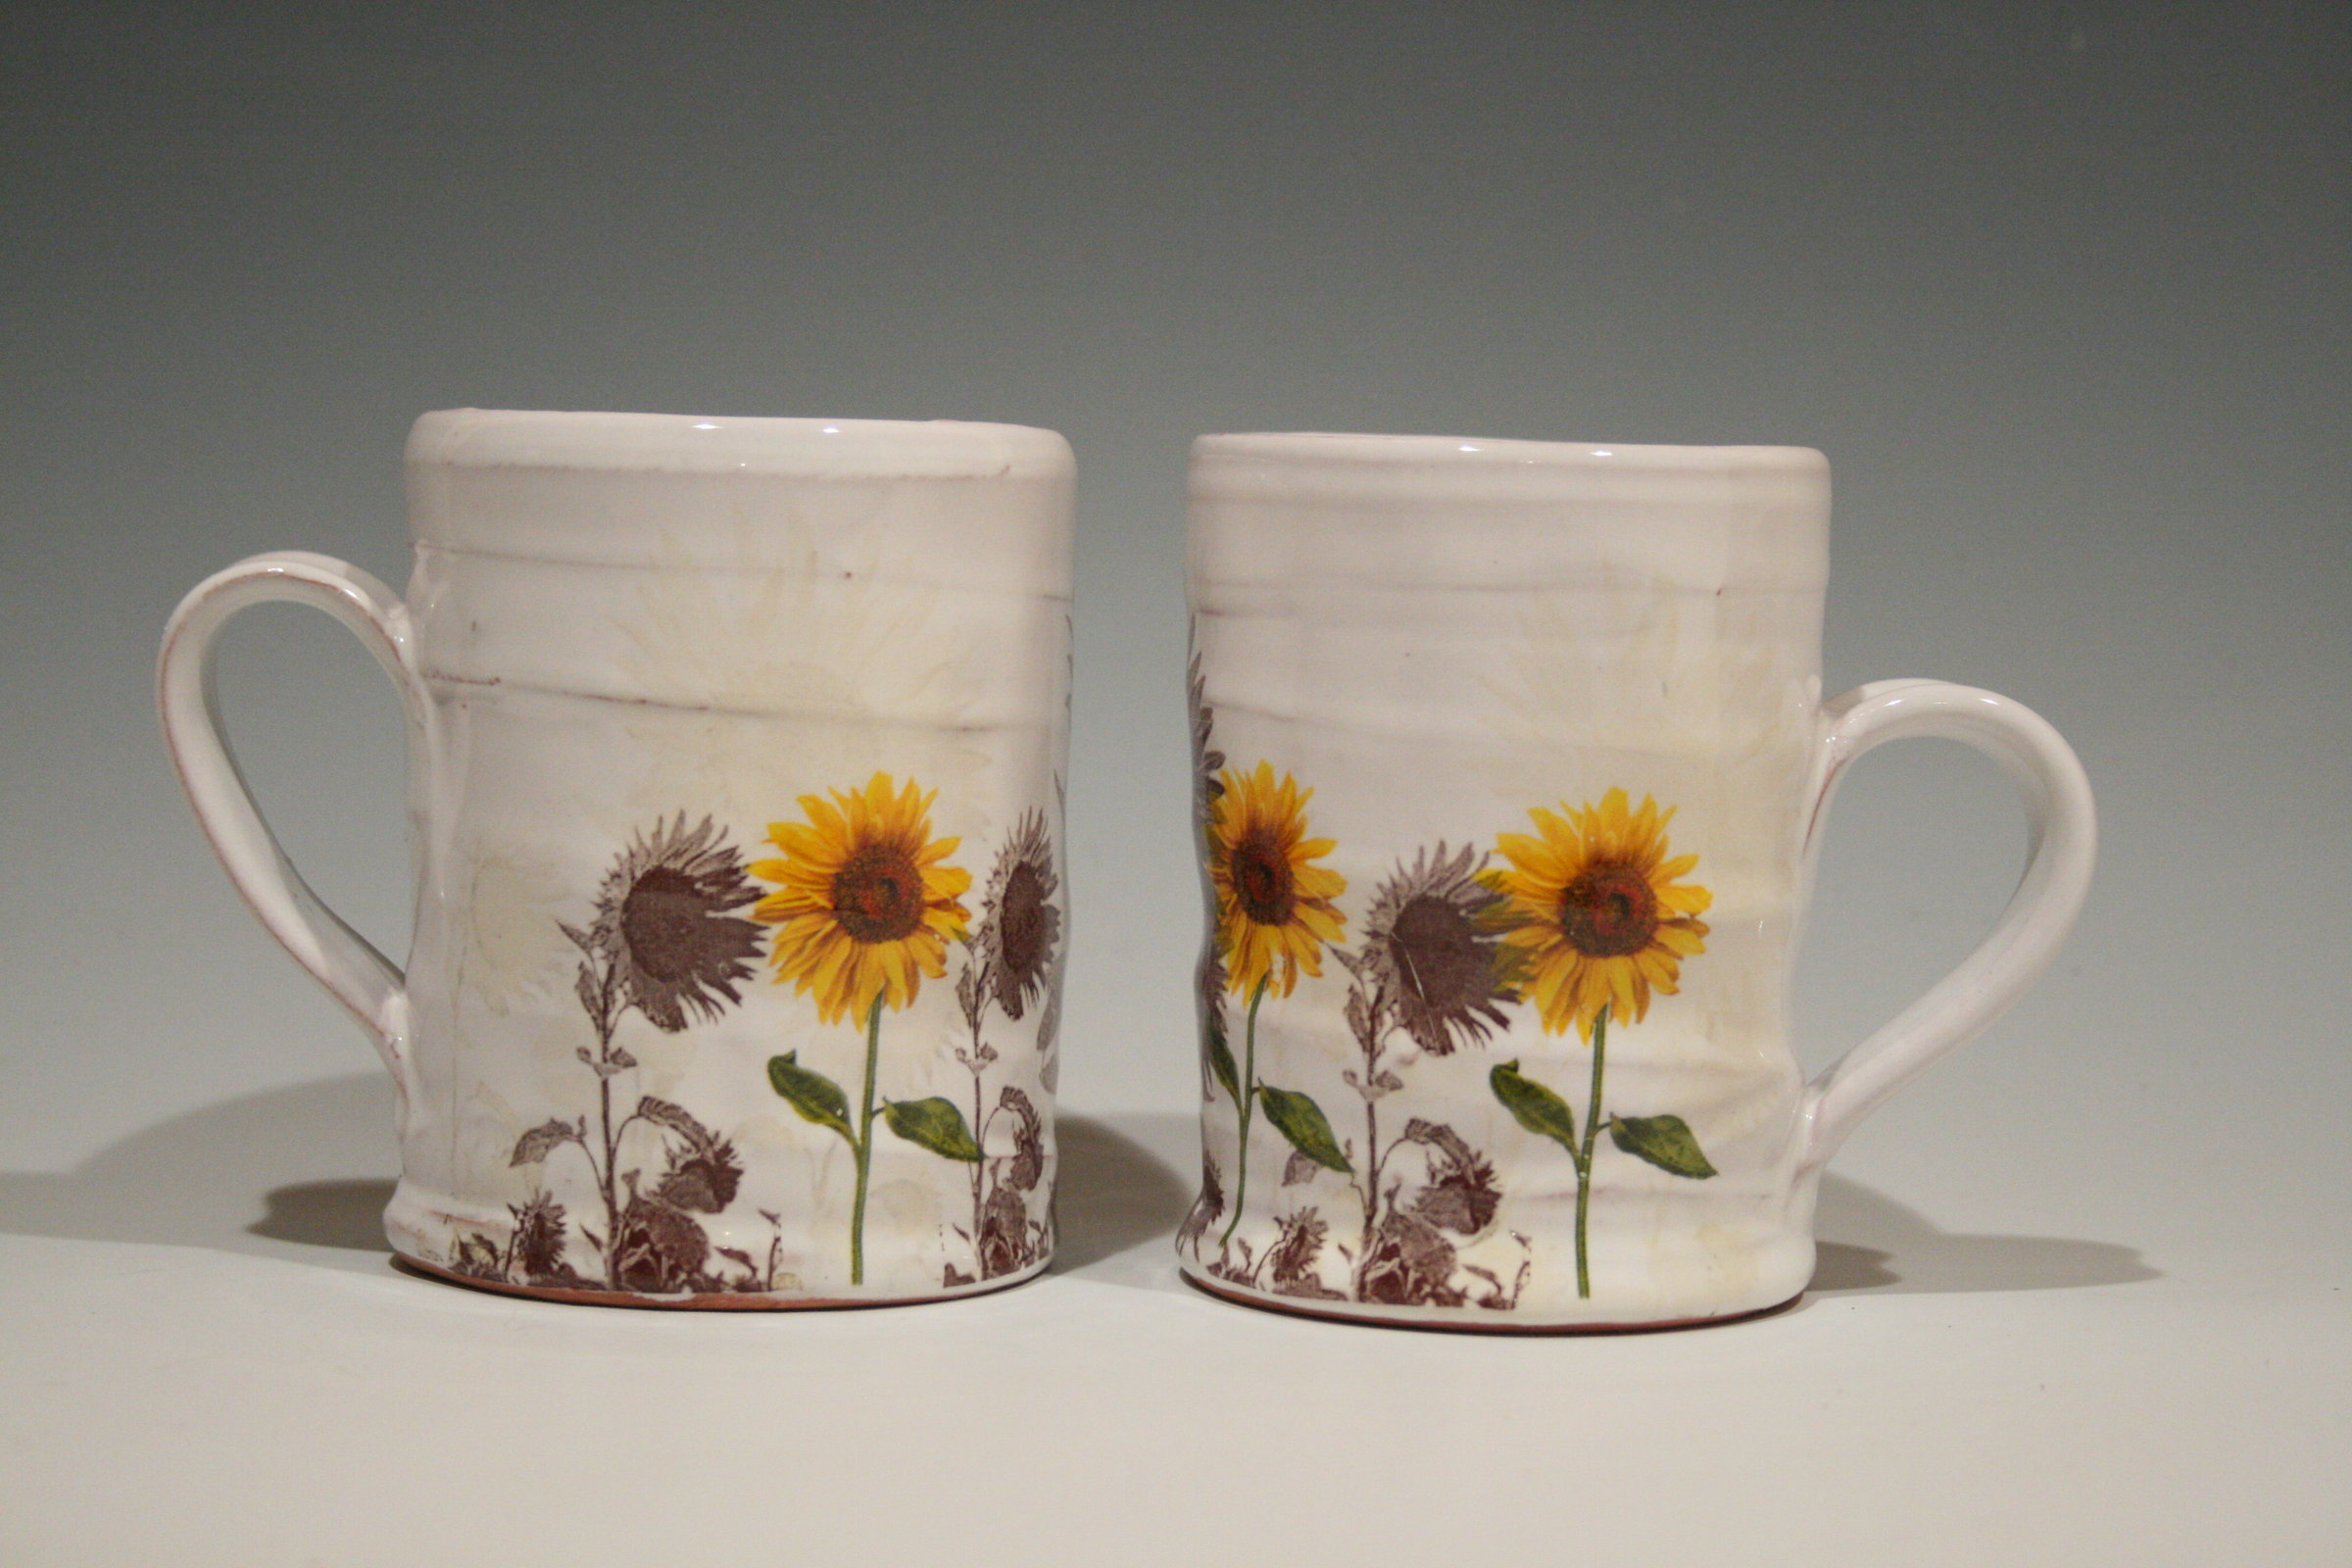 Sunflower Mug By Justin Rothshank Ceramic Mug Artful Home